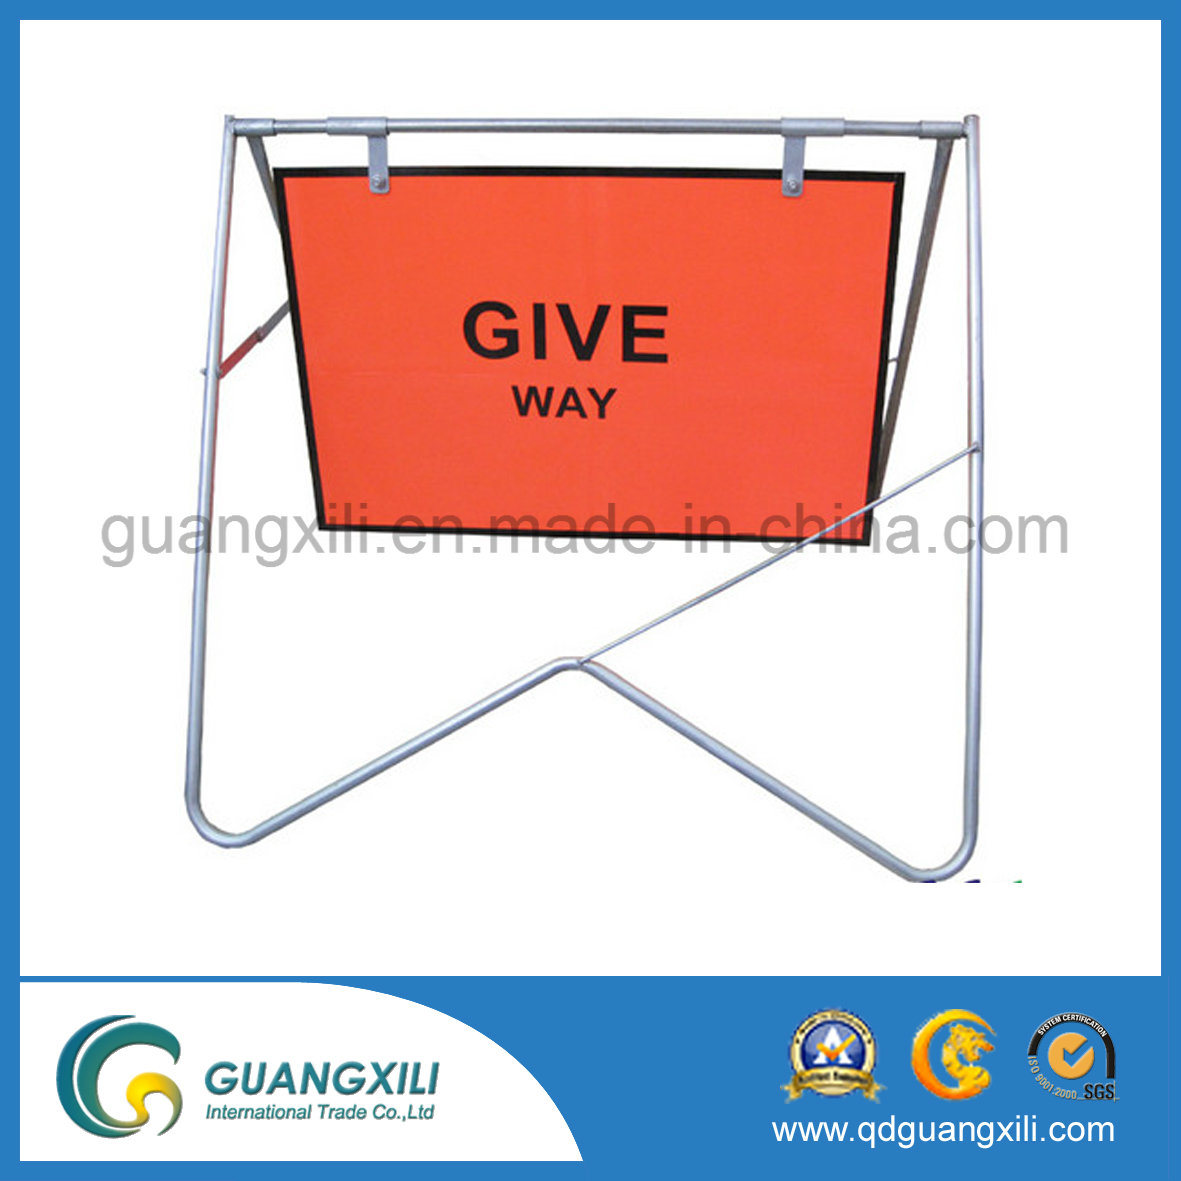 Zinc-Coated Steel Frame for Hanging Traffic Road Signage